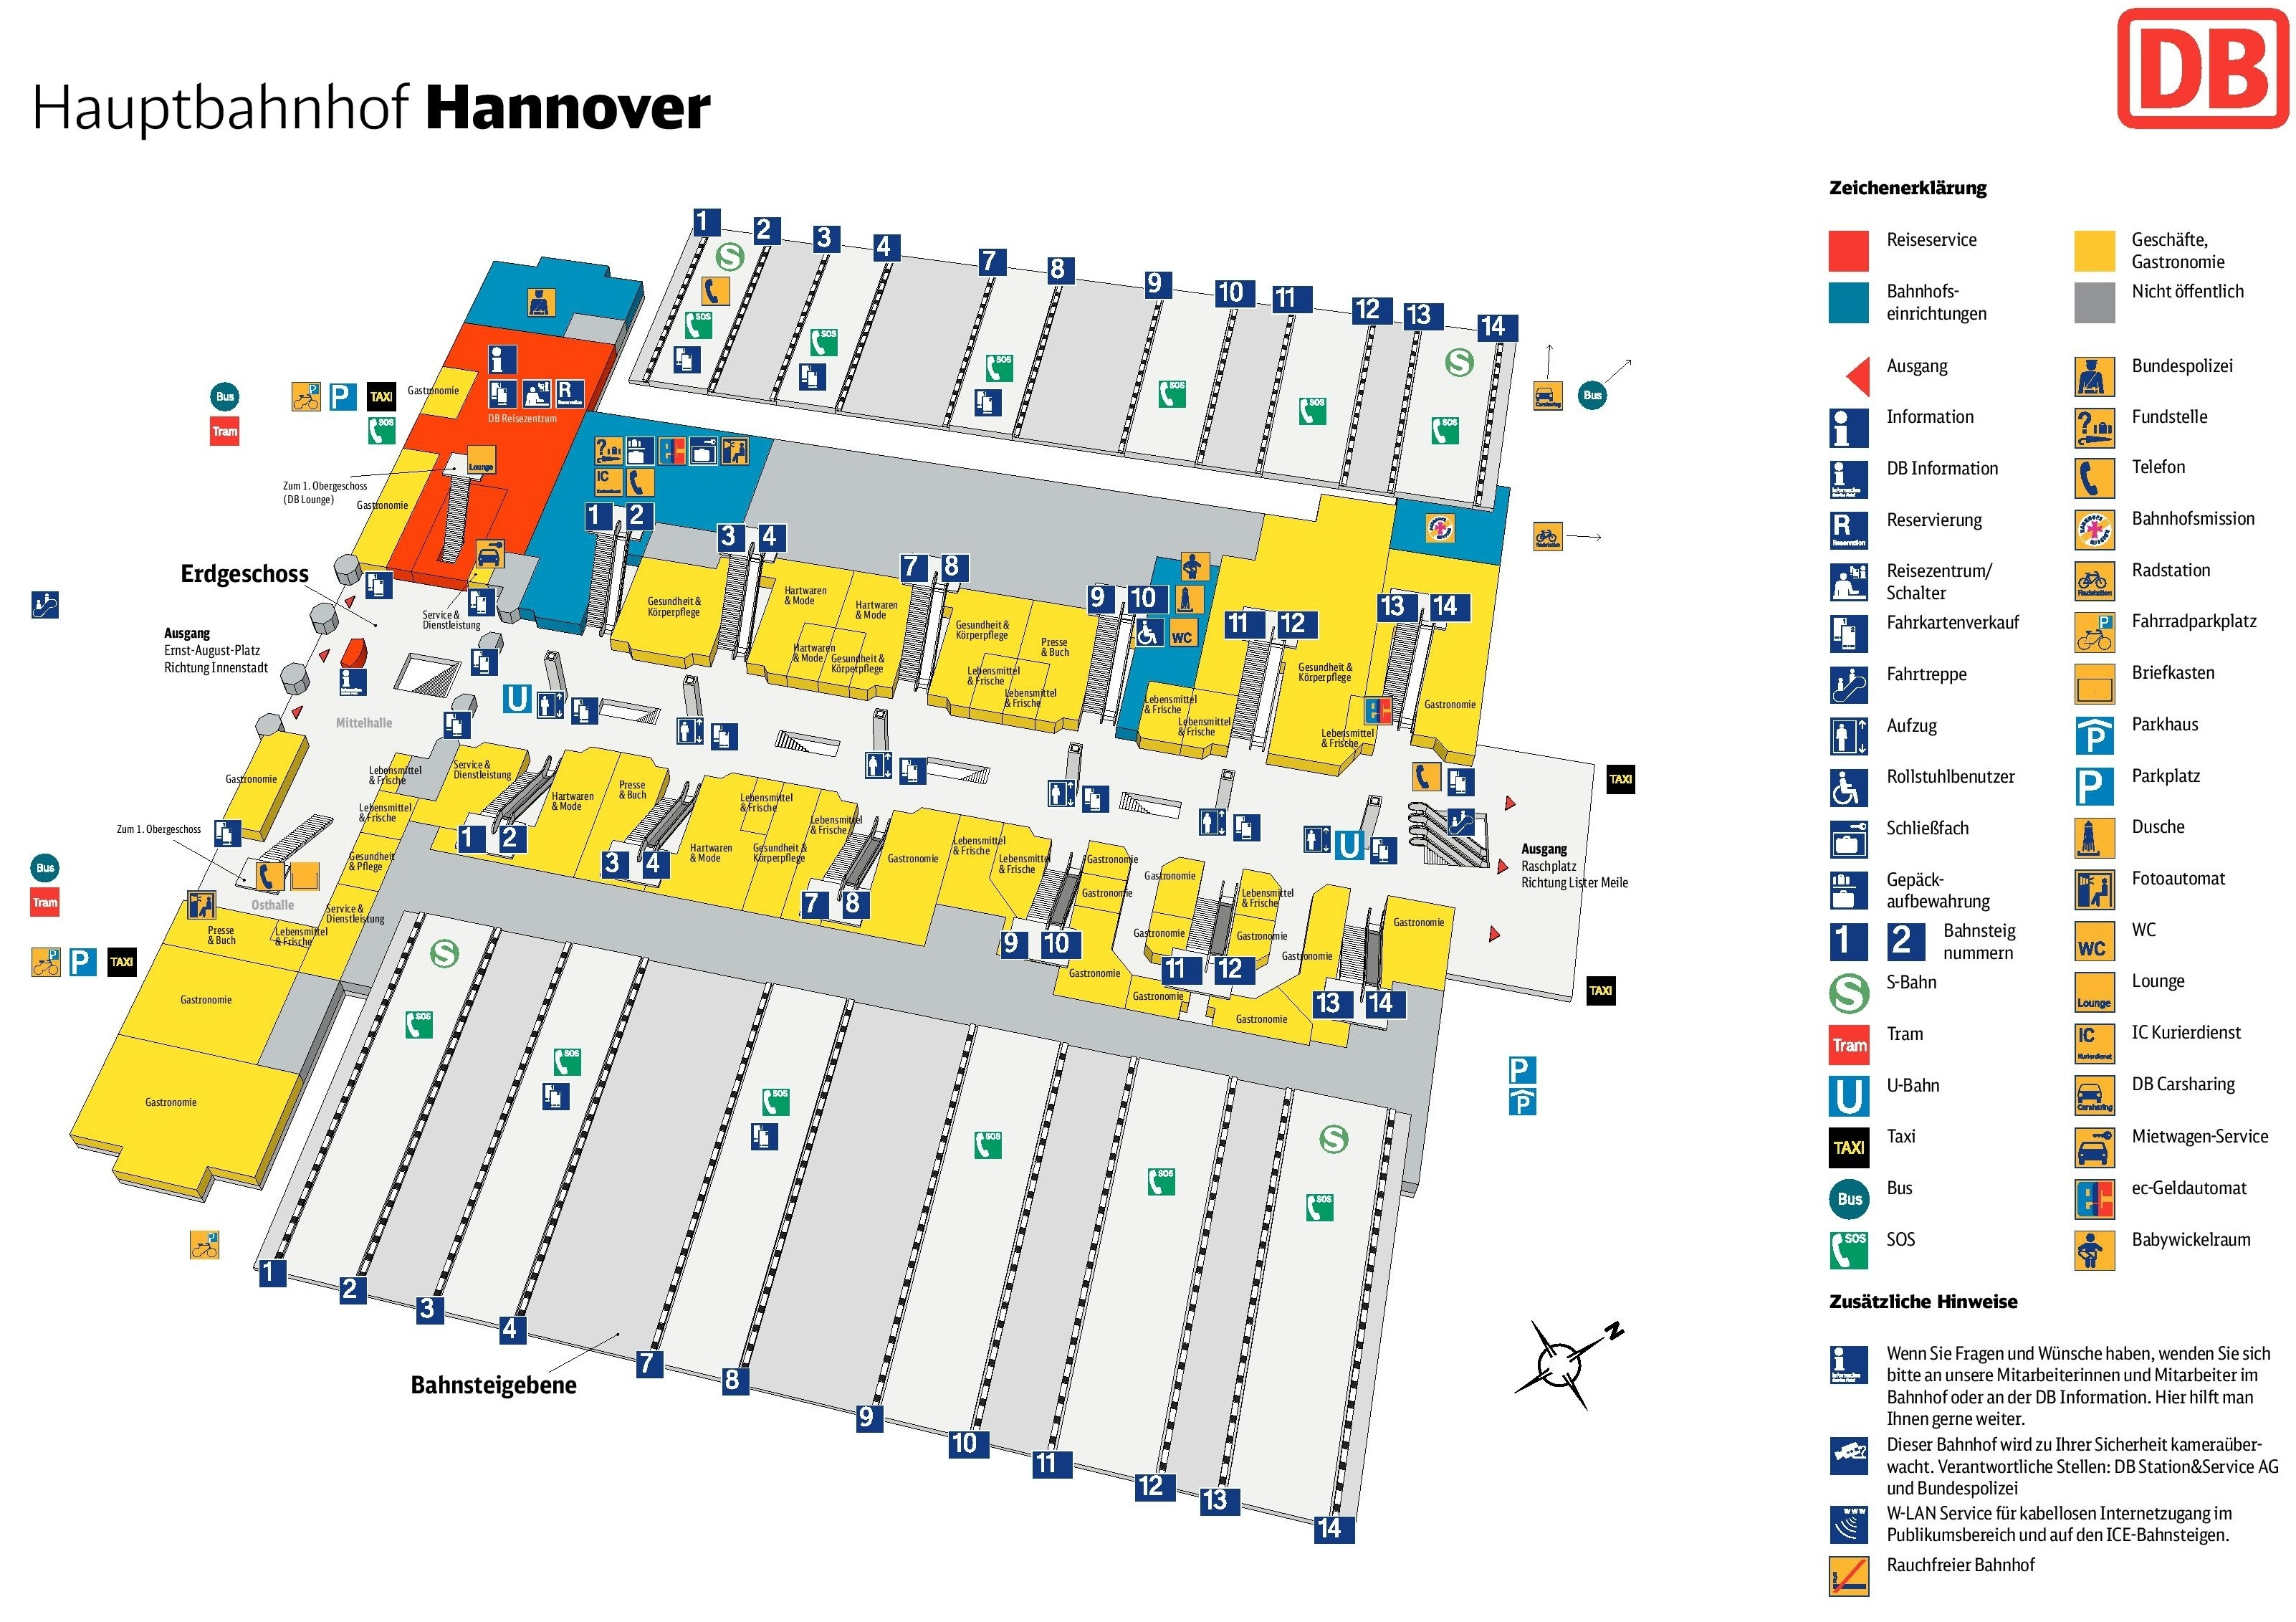 Hannover Hauptbahnhof Map (Central Train Station) with regard to Heidelberg Germany Train Station Map